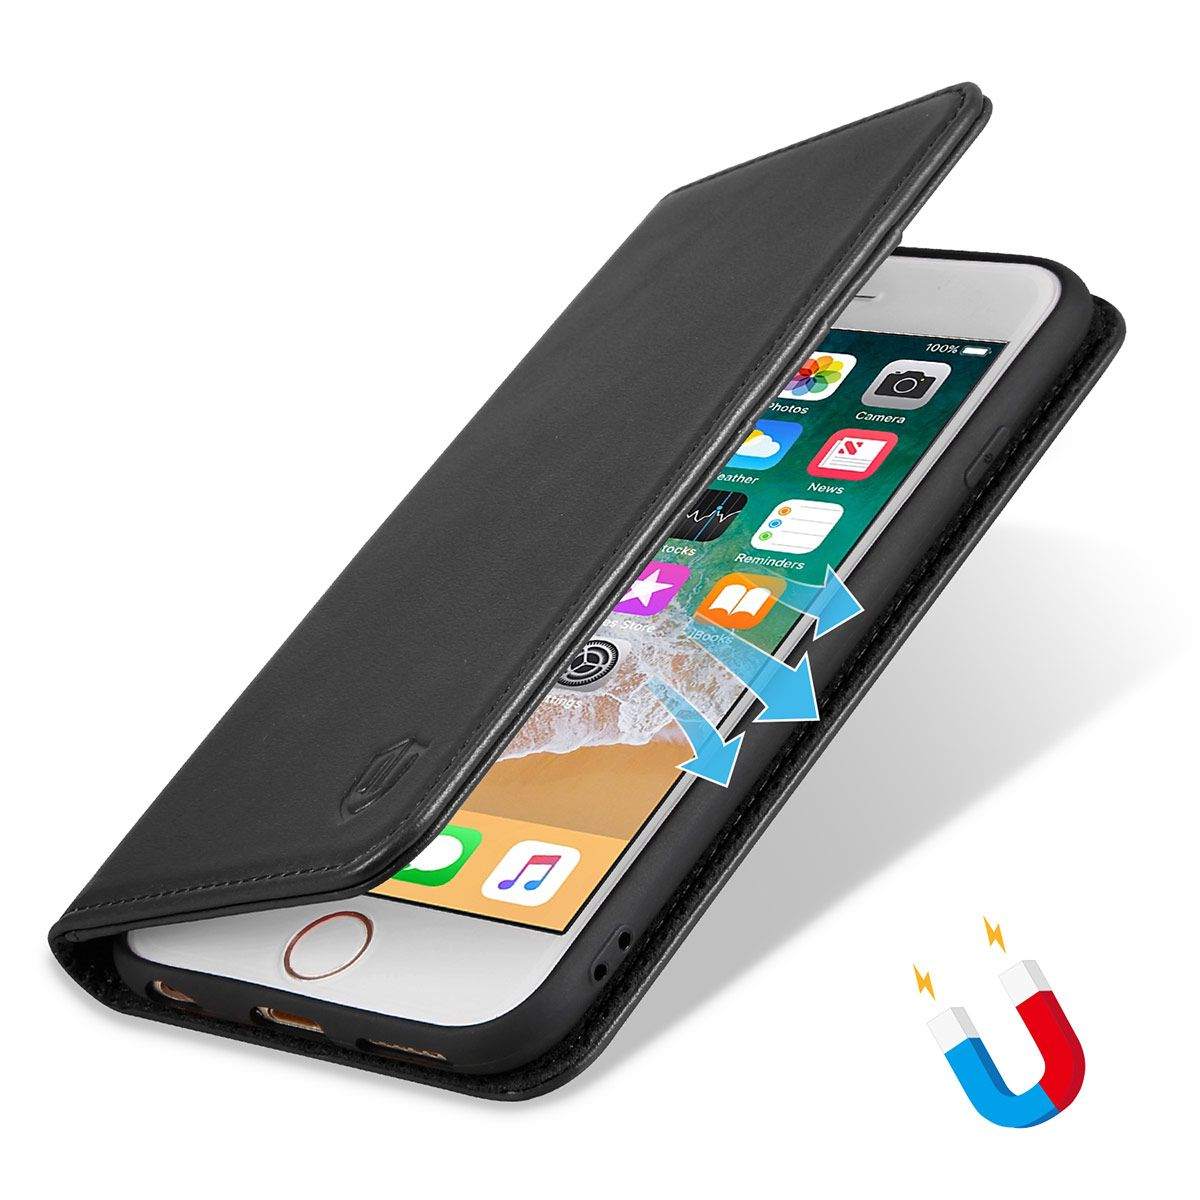 the latest 81fbf 80bda SHIELDON iPhone 6 Plus Folio Case, iPhone 6s Plus Wallet Case - Genuine  Leather Cover with TPU